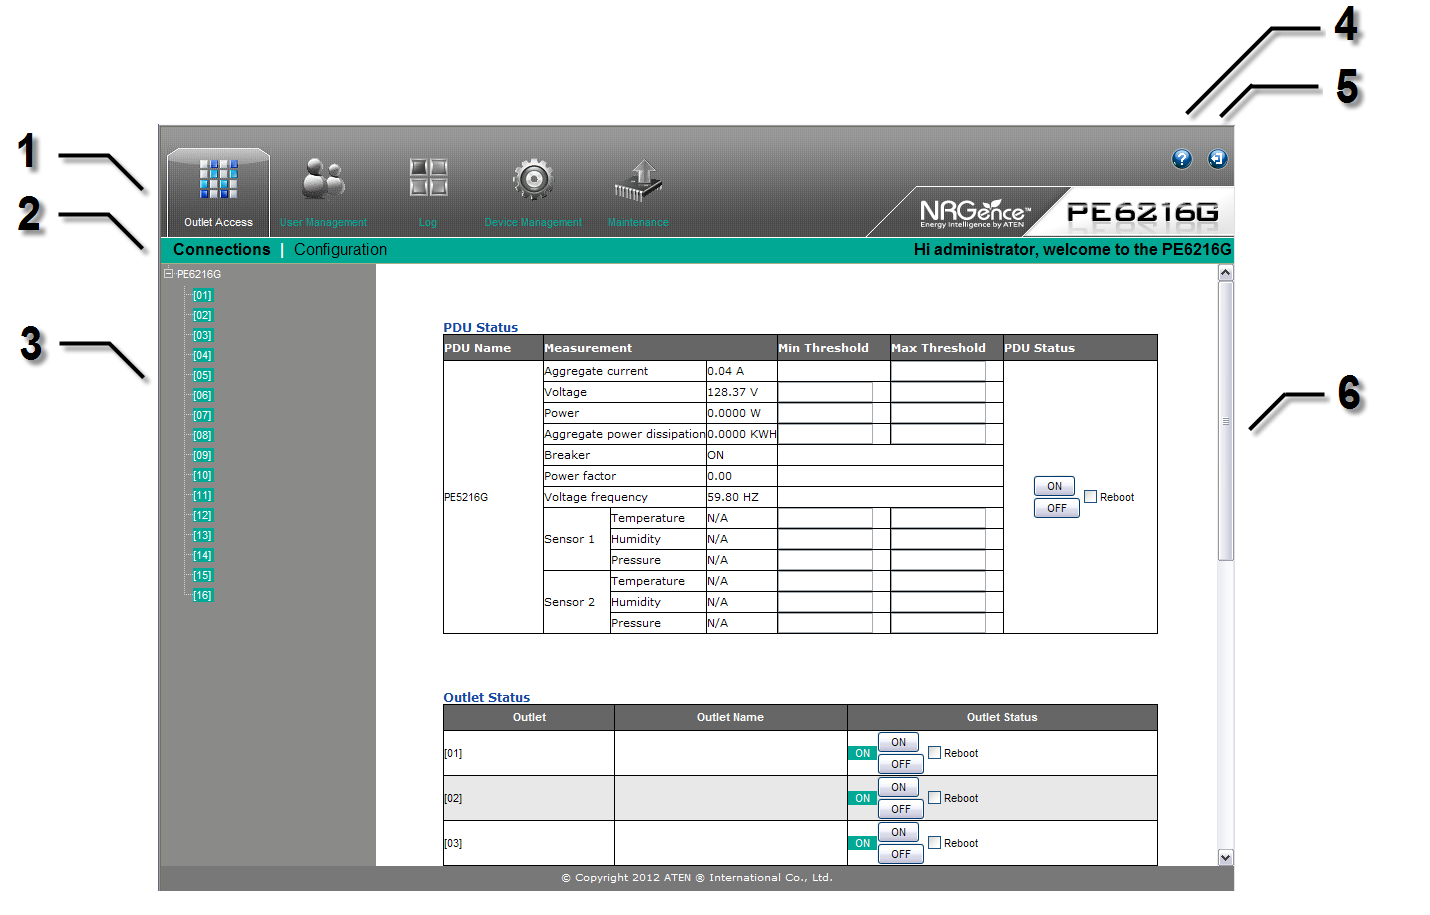 The eco PDU Main Page After you have successfully logged in, the eco PDU Main Page comes up with the Outlet Access Connections page displayed: